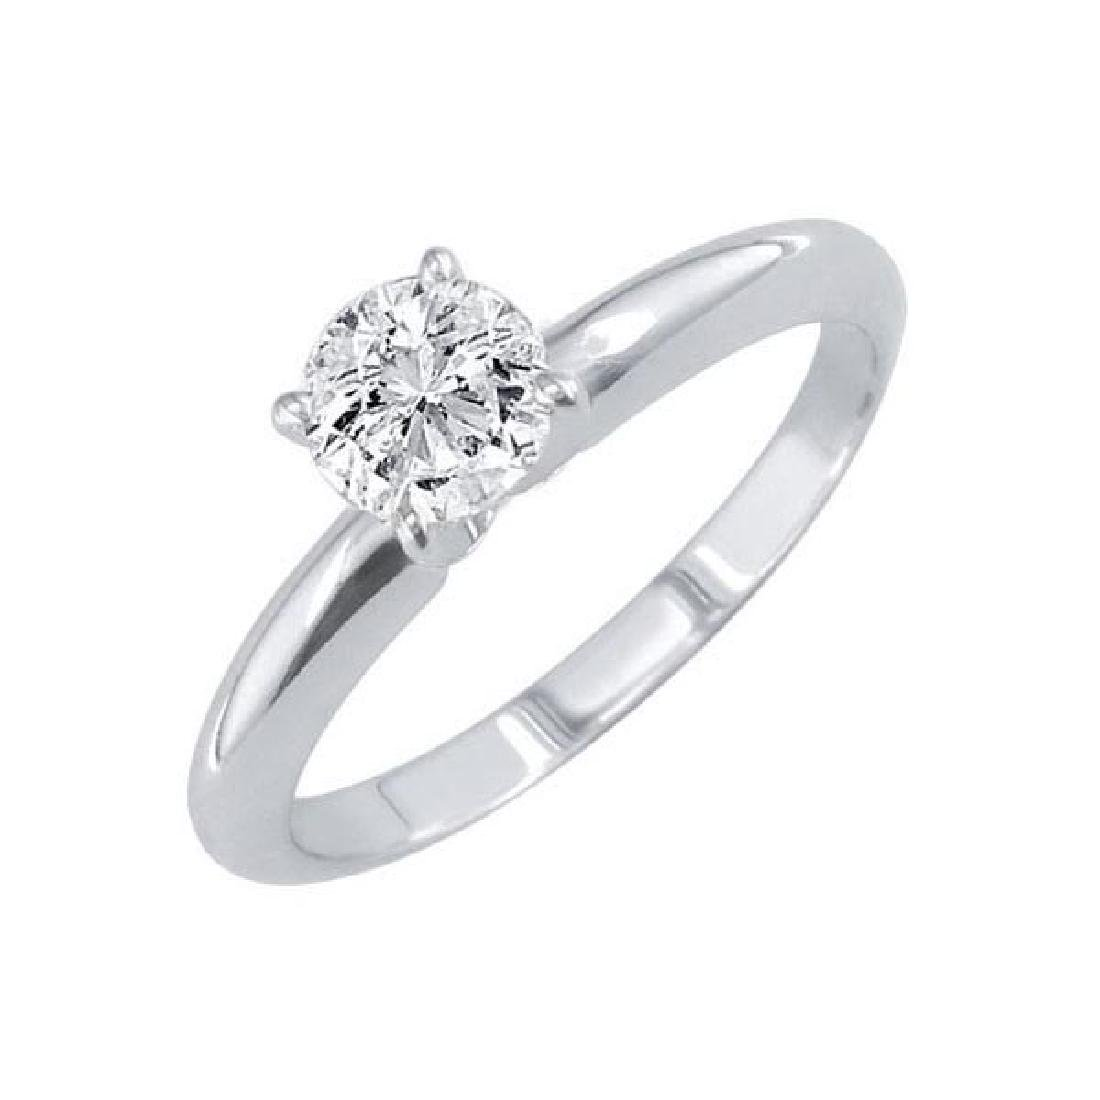 Certified 1.36 CTW Round Diamond Solitaire 14k Ring F/S